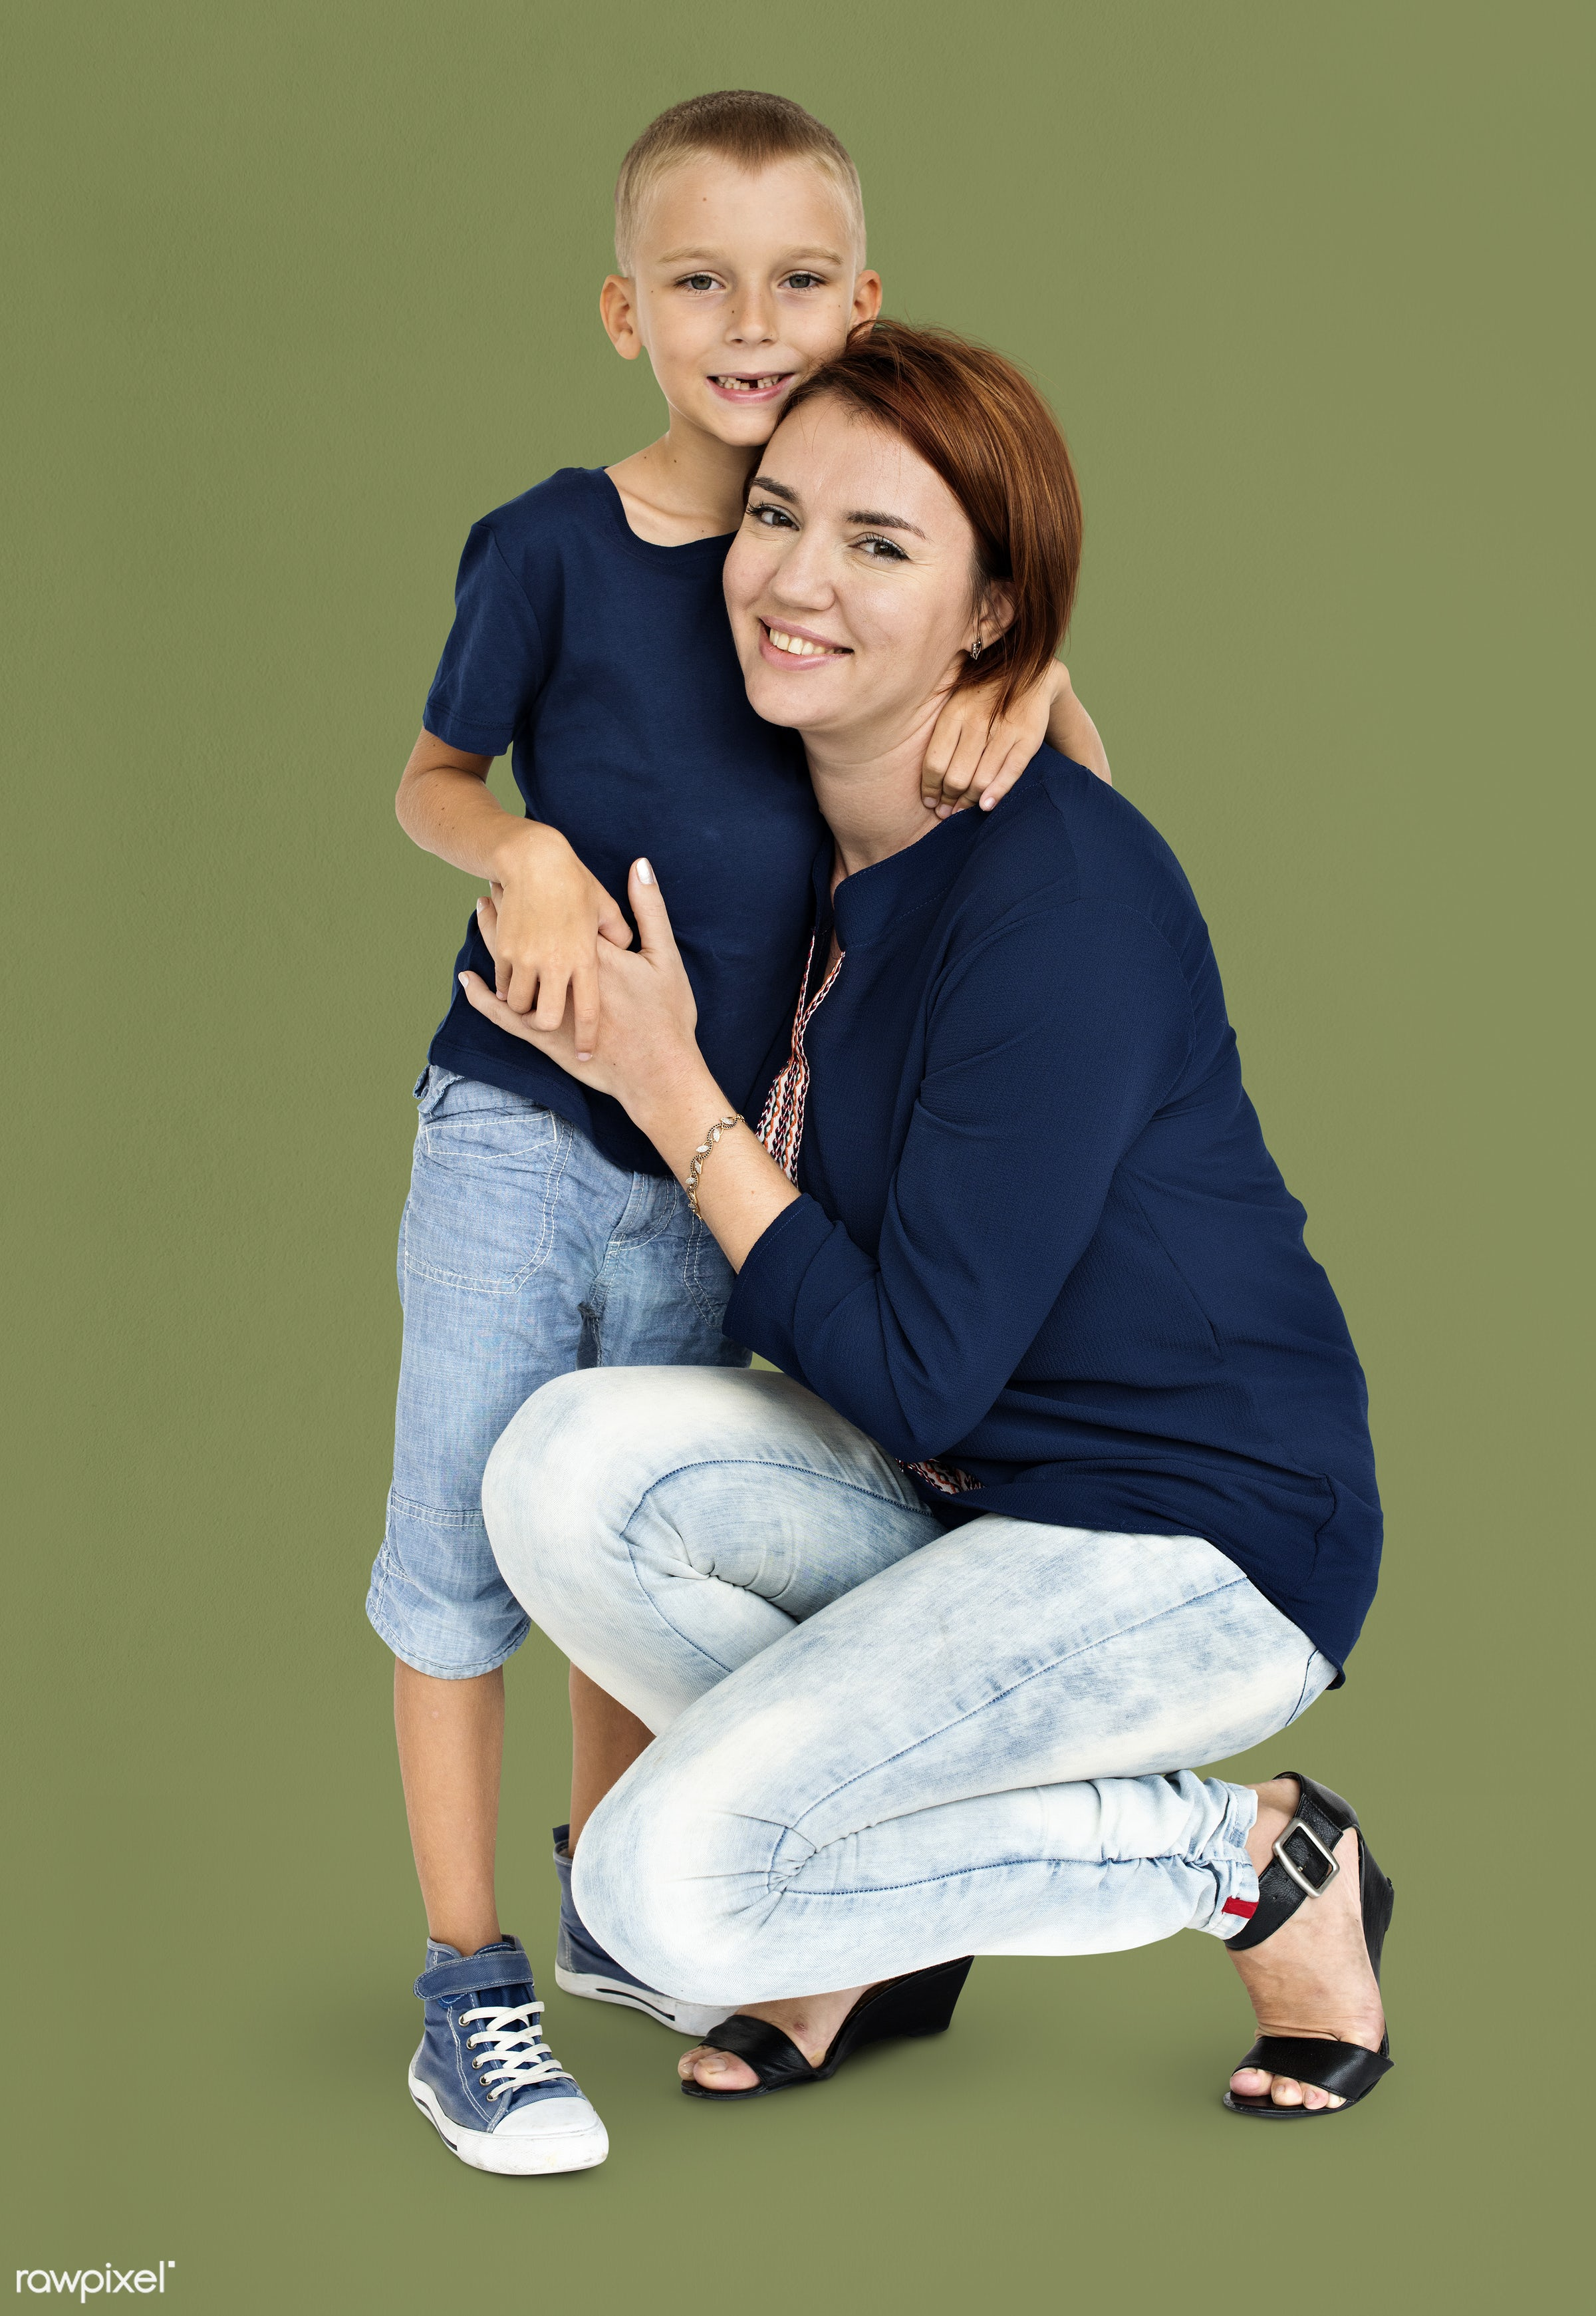 studio, person, little, people, together, kid, love, family, woman, care, childhood, cheerful, smiling, support, parent, son...